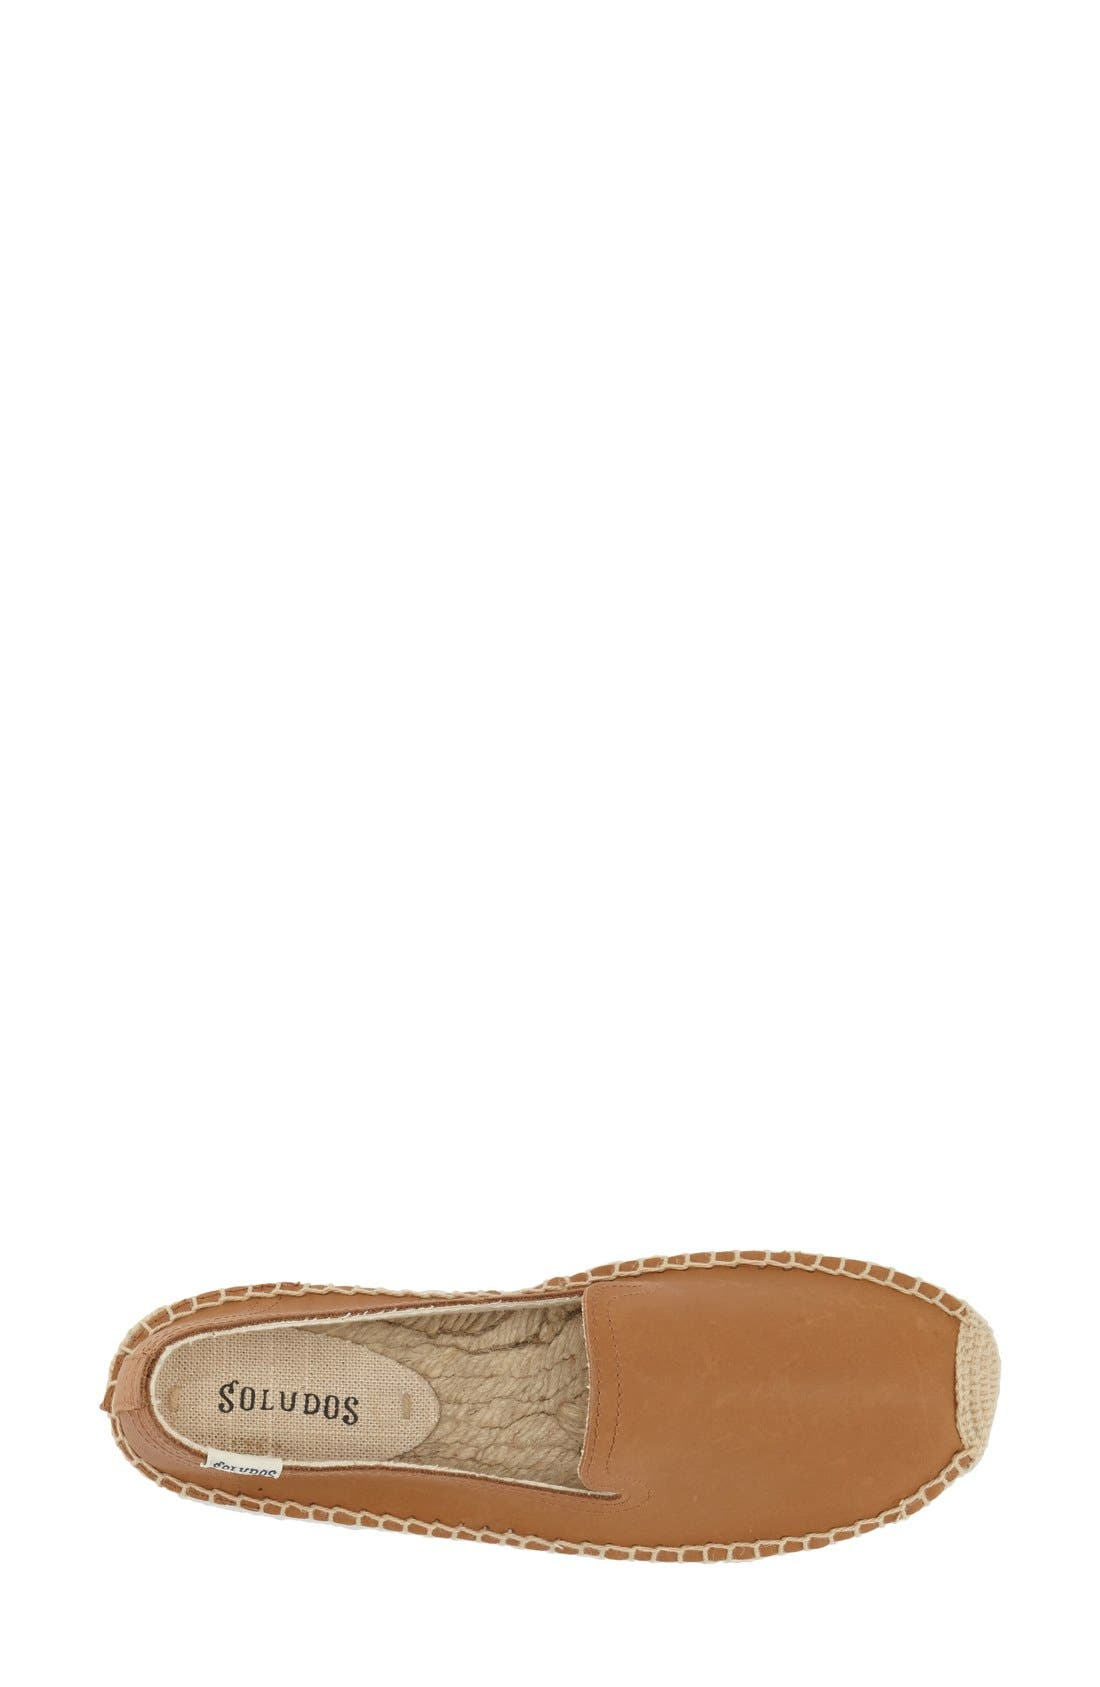 'Smoking' Espadrille Platform Shoe,                             Alternate thumbnail 4, color,                             TAN LEATHER